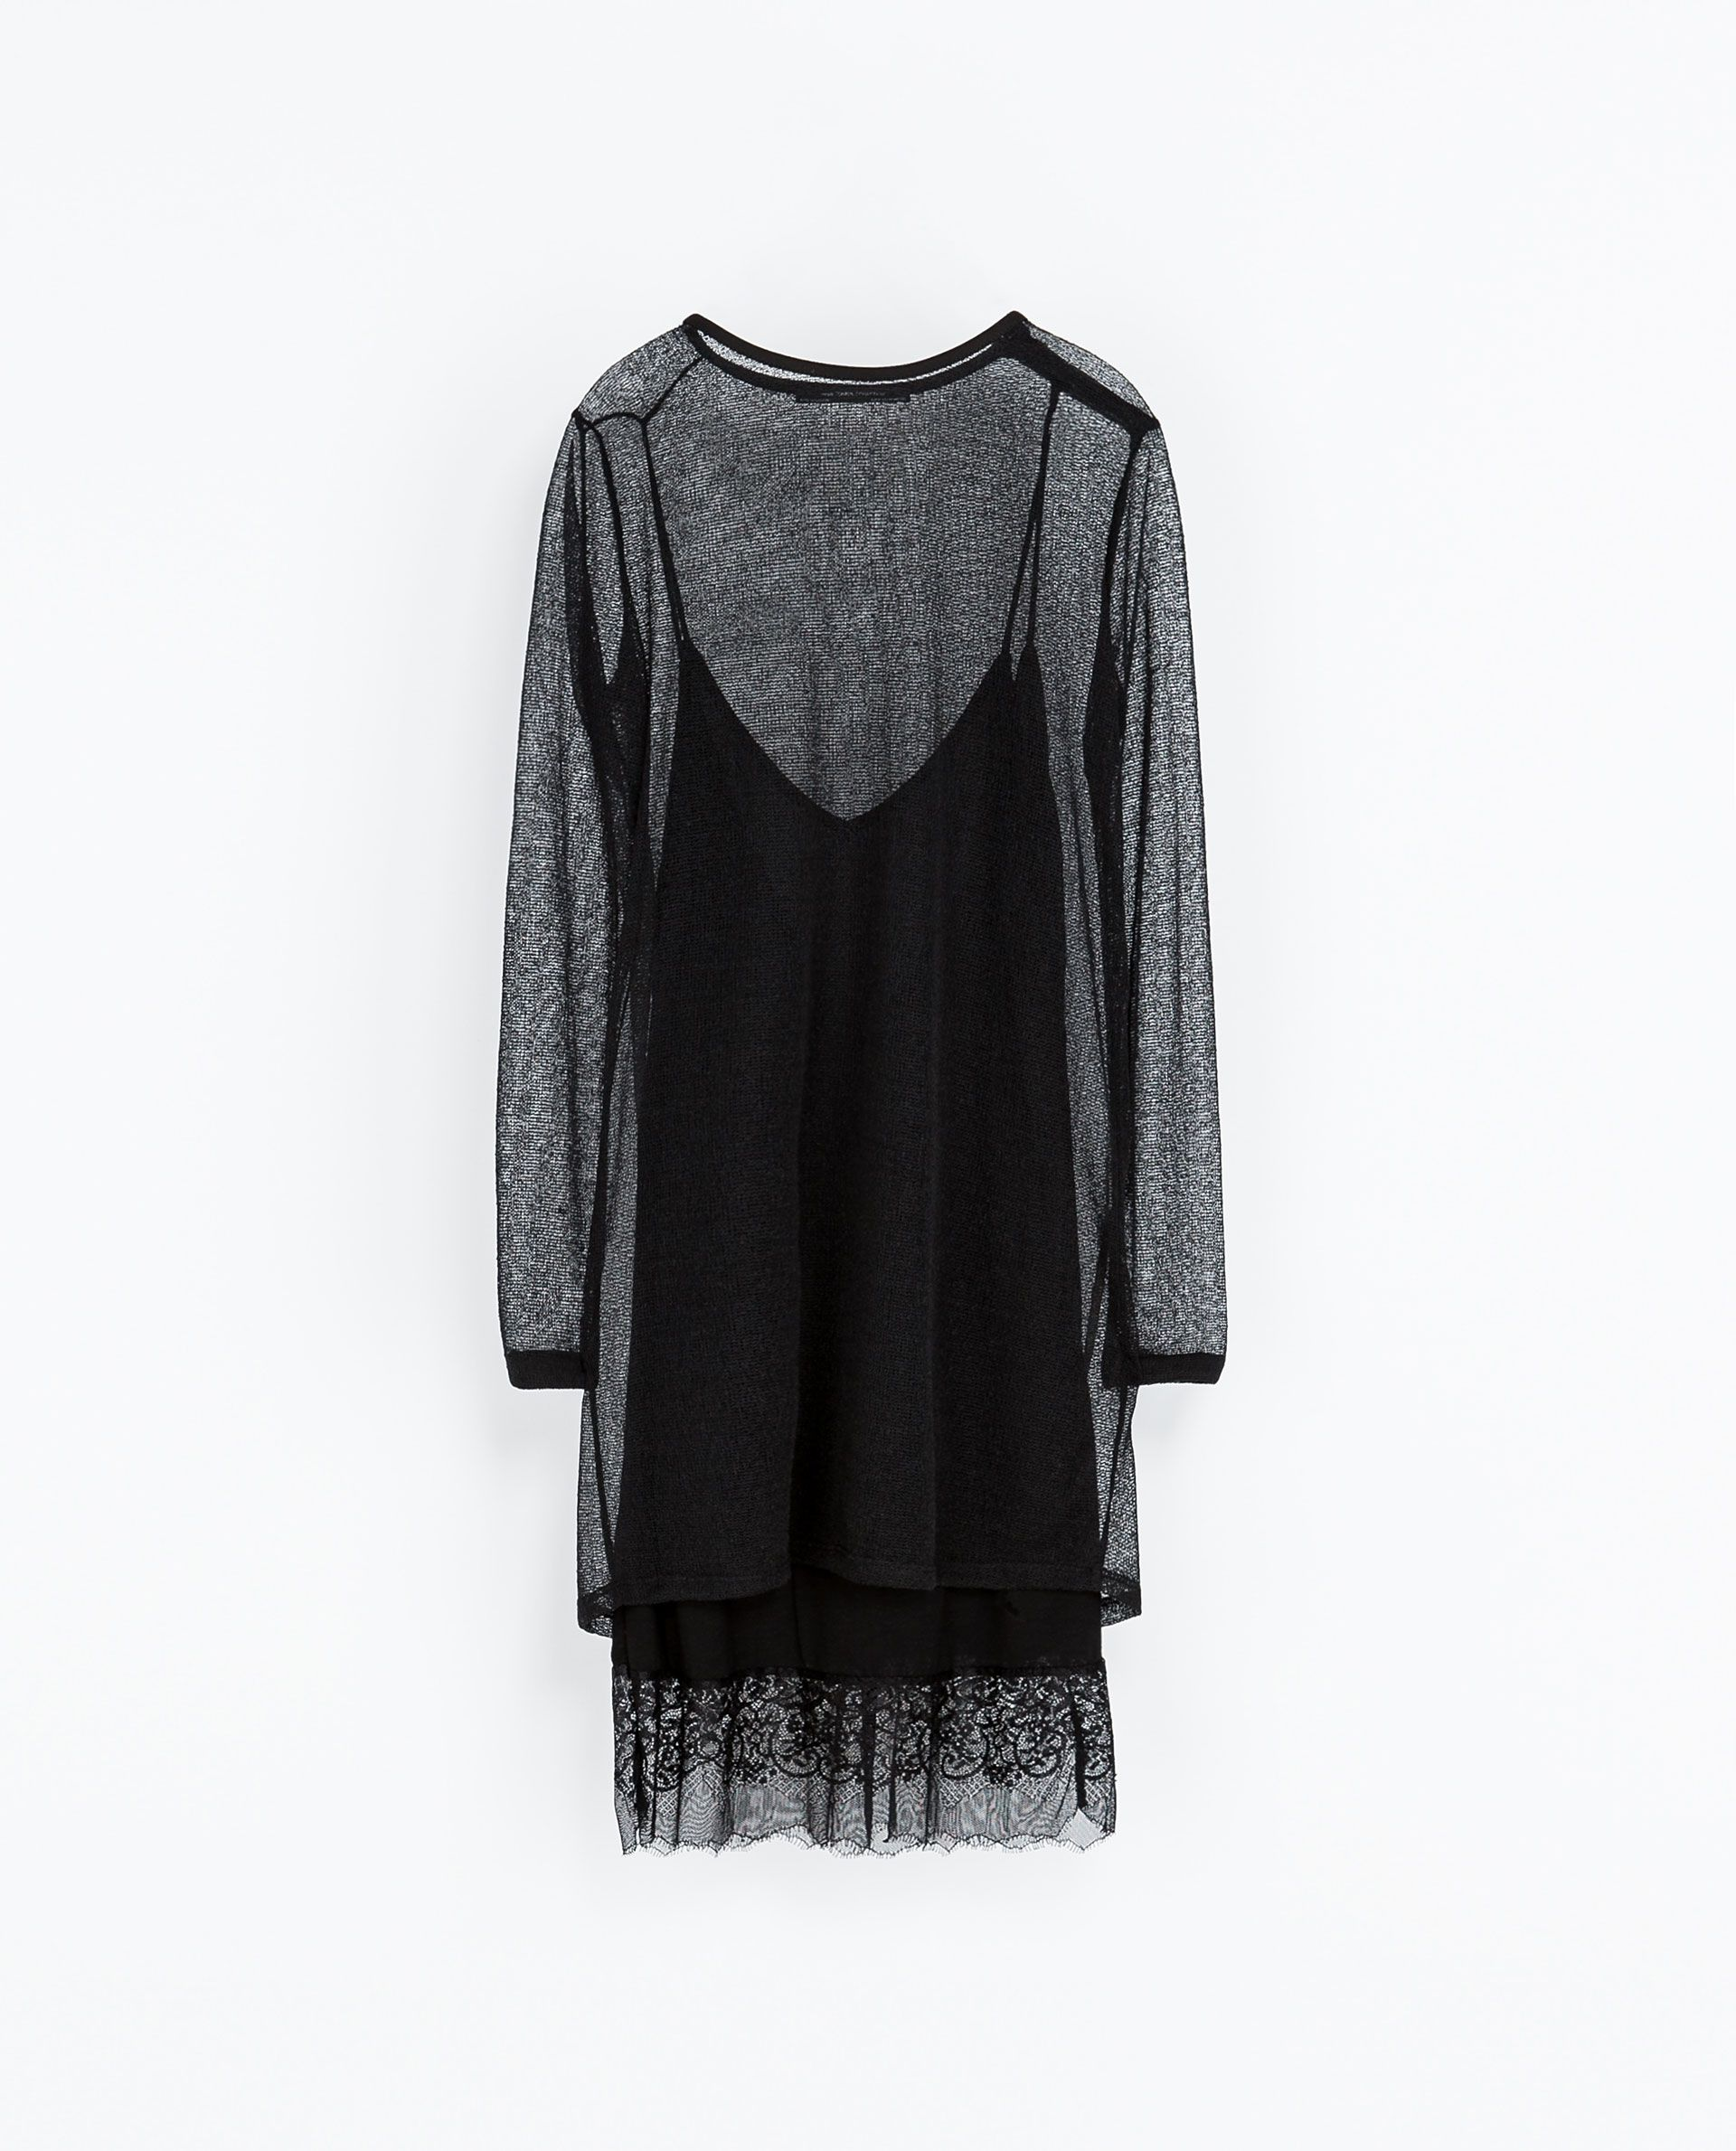 ZARA - WOMAN - DOUBLE LAYER LINGERIE STYLE AND MESH DRESS | CLOTHES ...